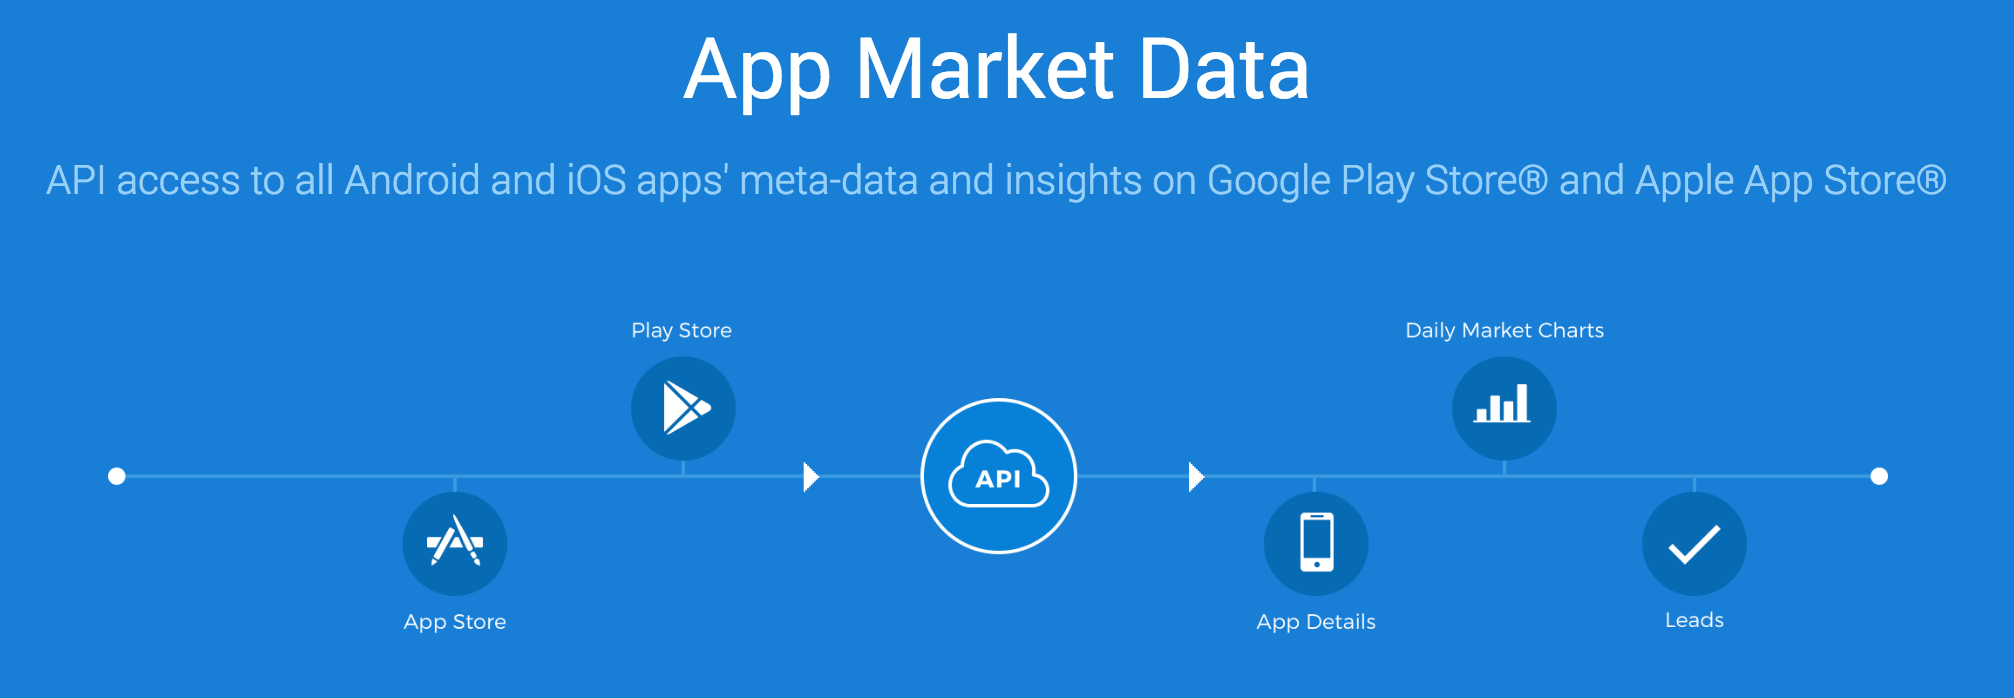 API access to Mobile Data for Android, iOS and Tencent